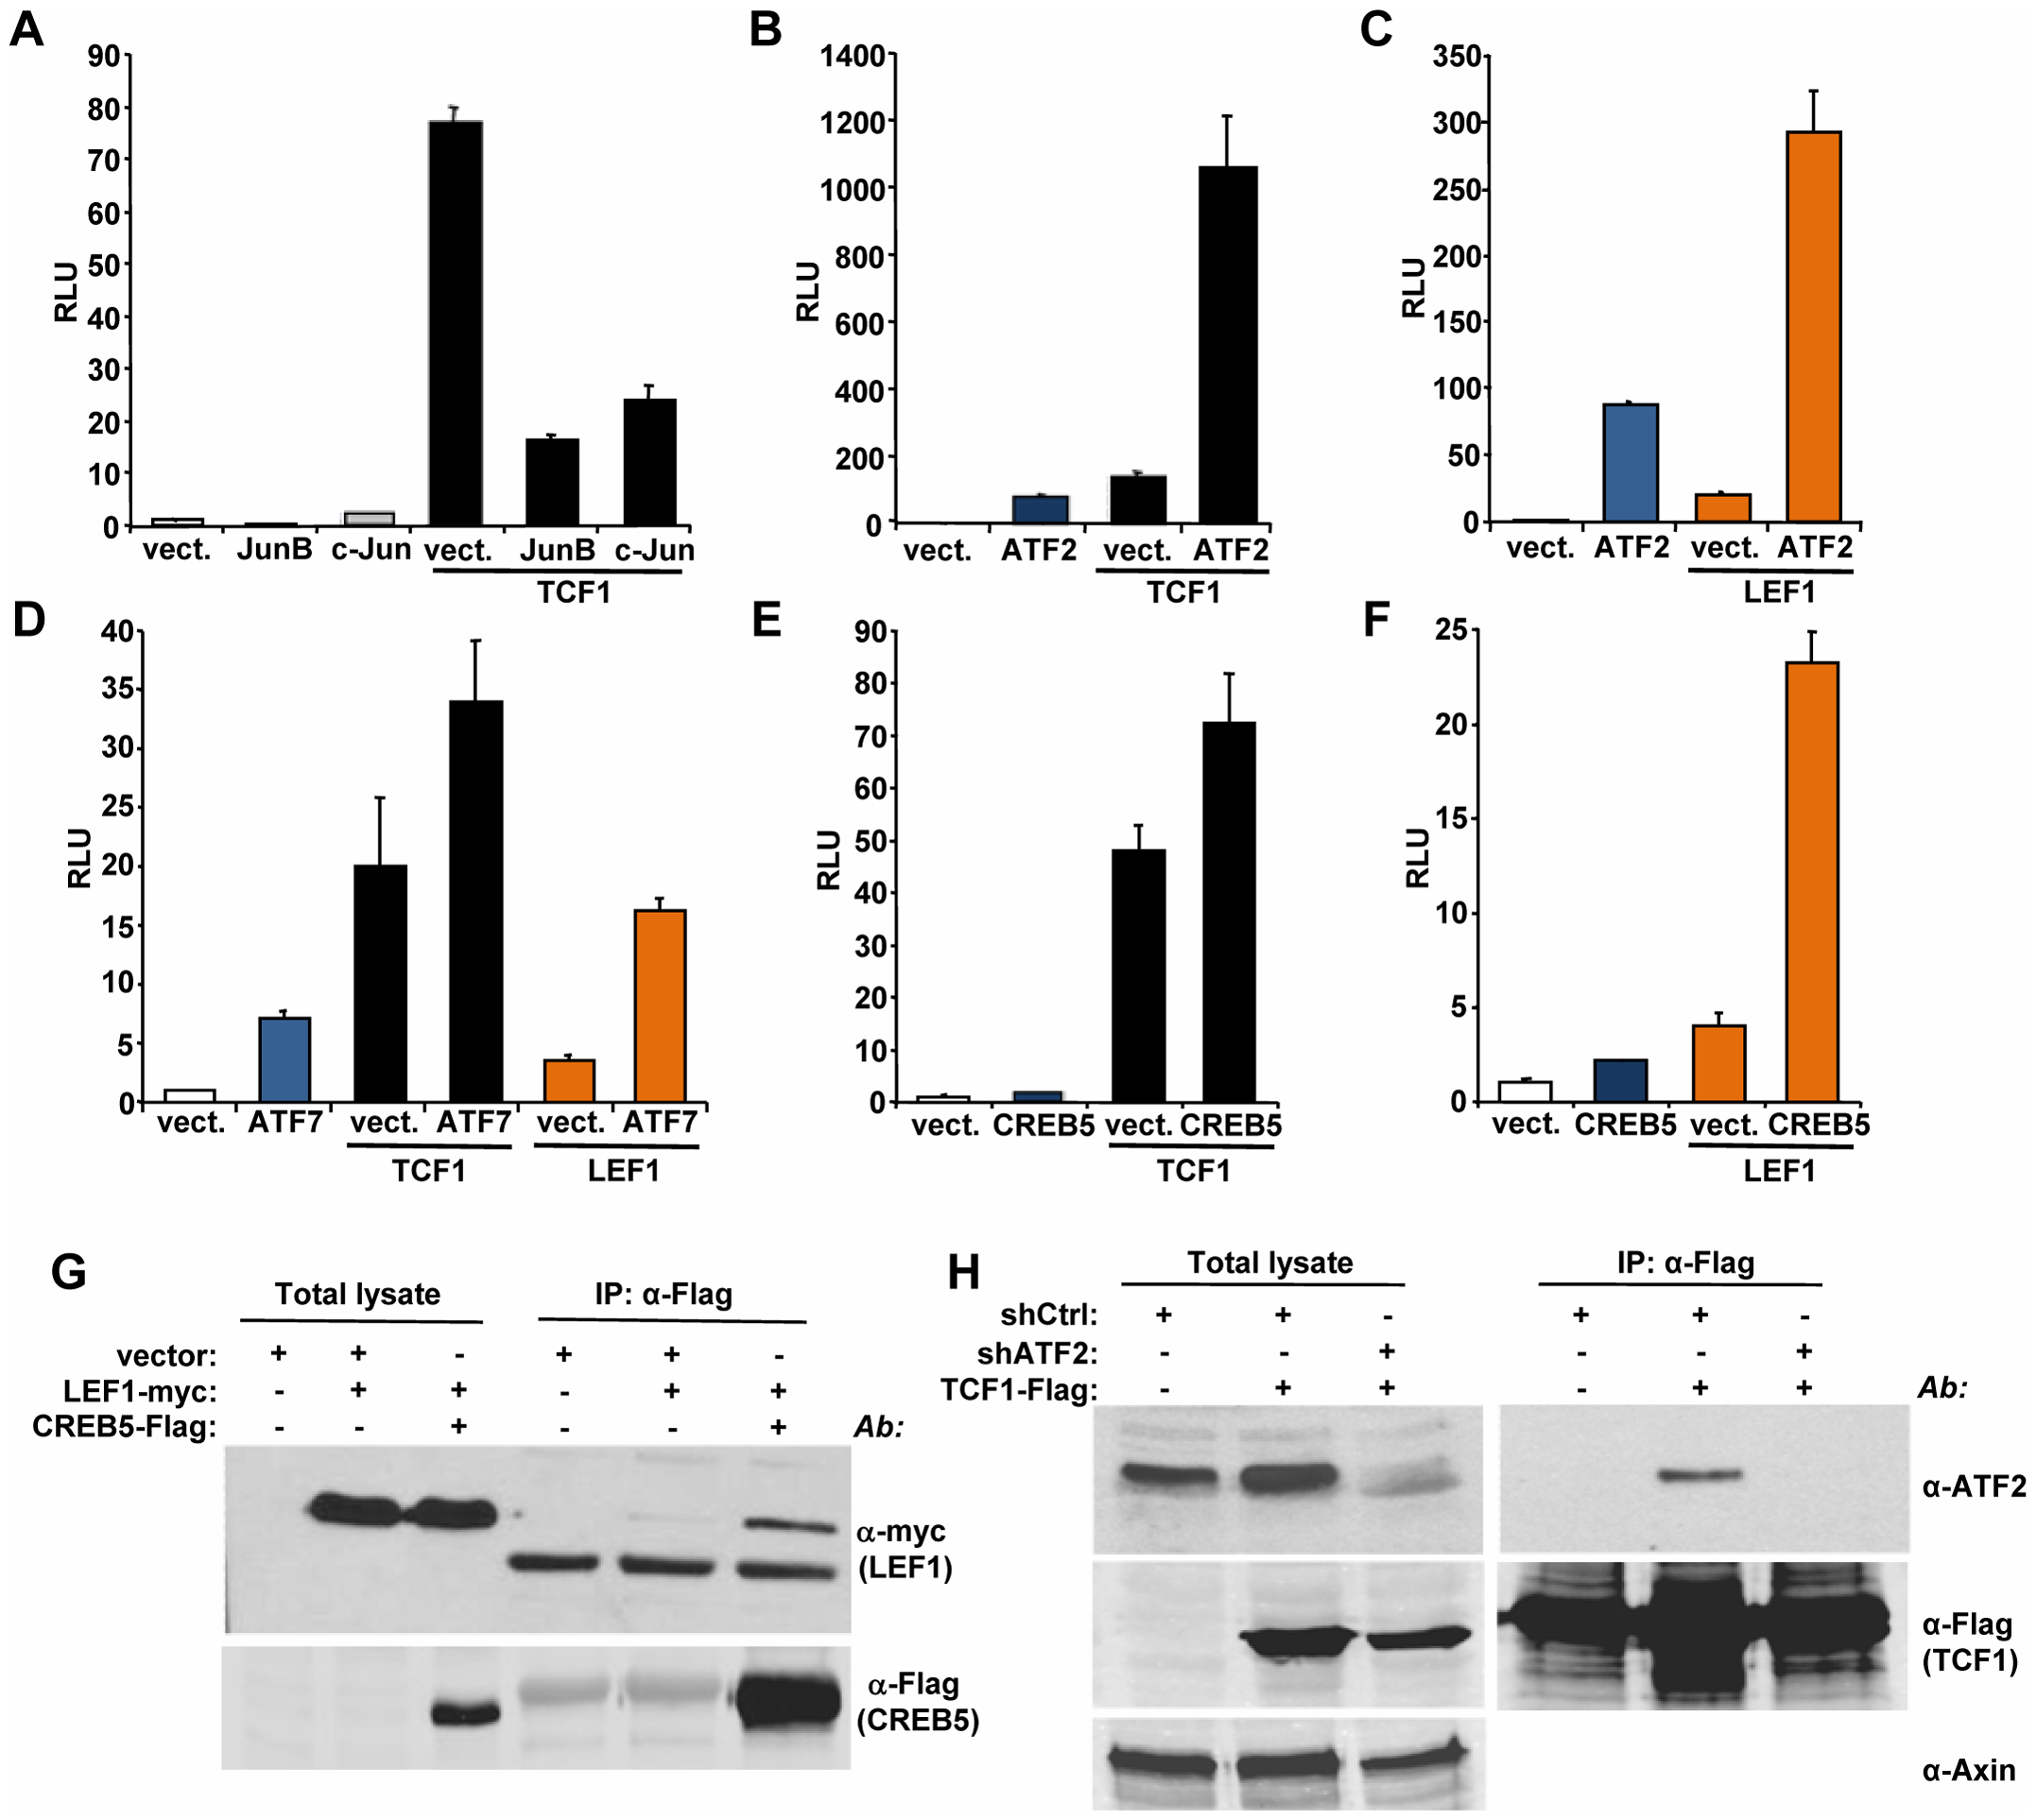 ATF2 transcription factors cooperate with TCF1/LEF1 to stimulate TCF/LEF activity.